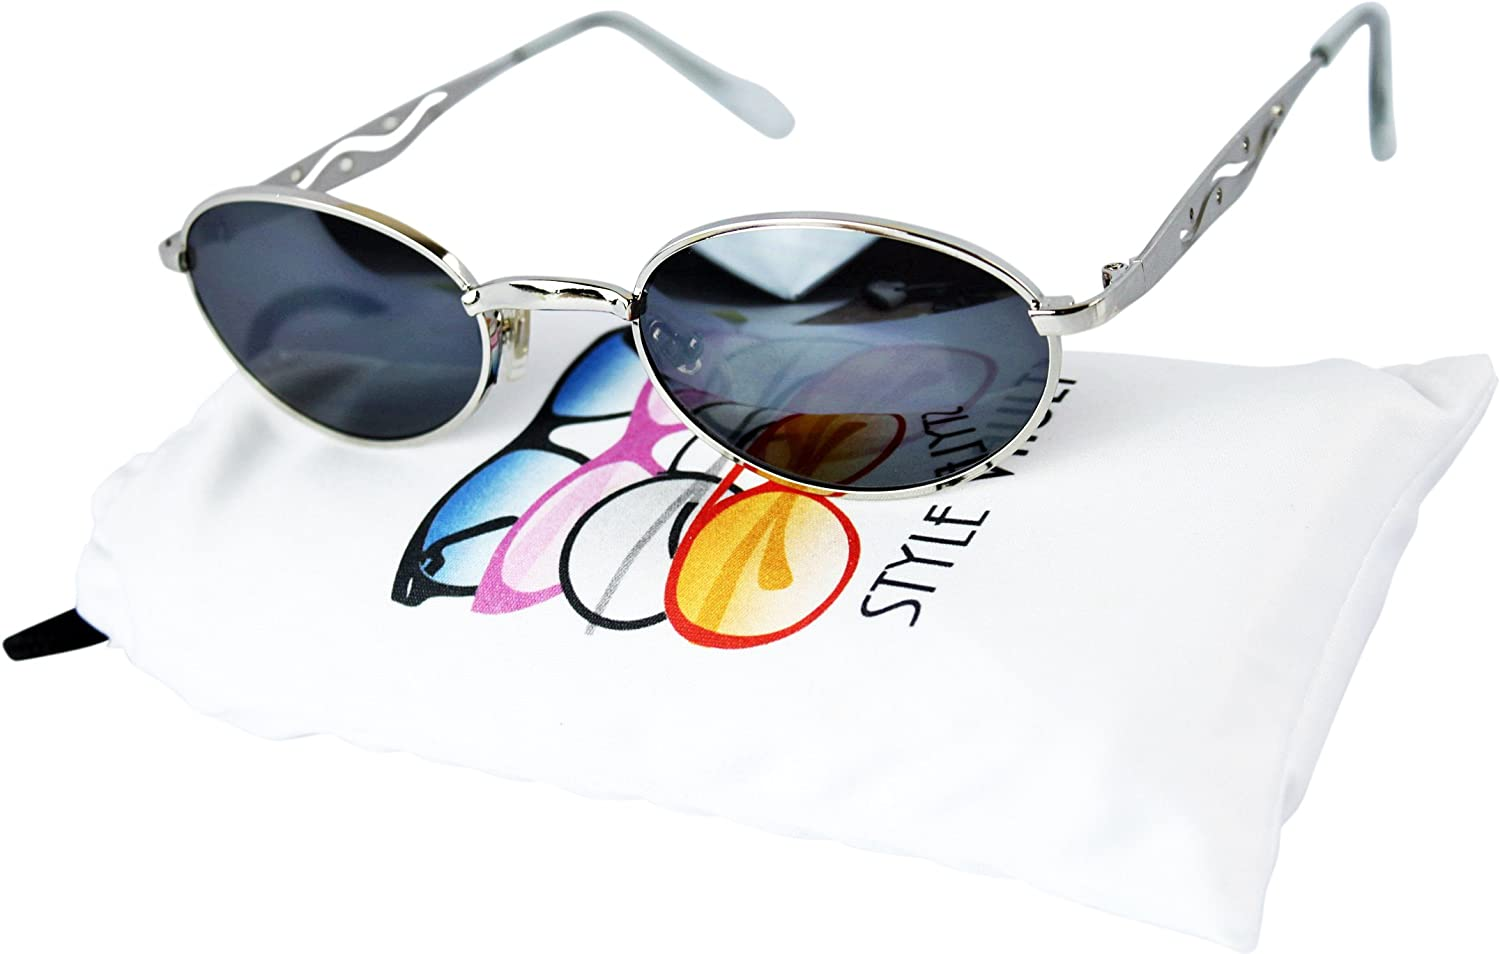 V3024op Style Vault Oval Round 80s 90s Metal Sunglasses